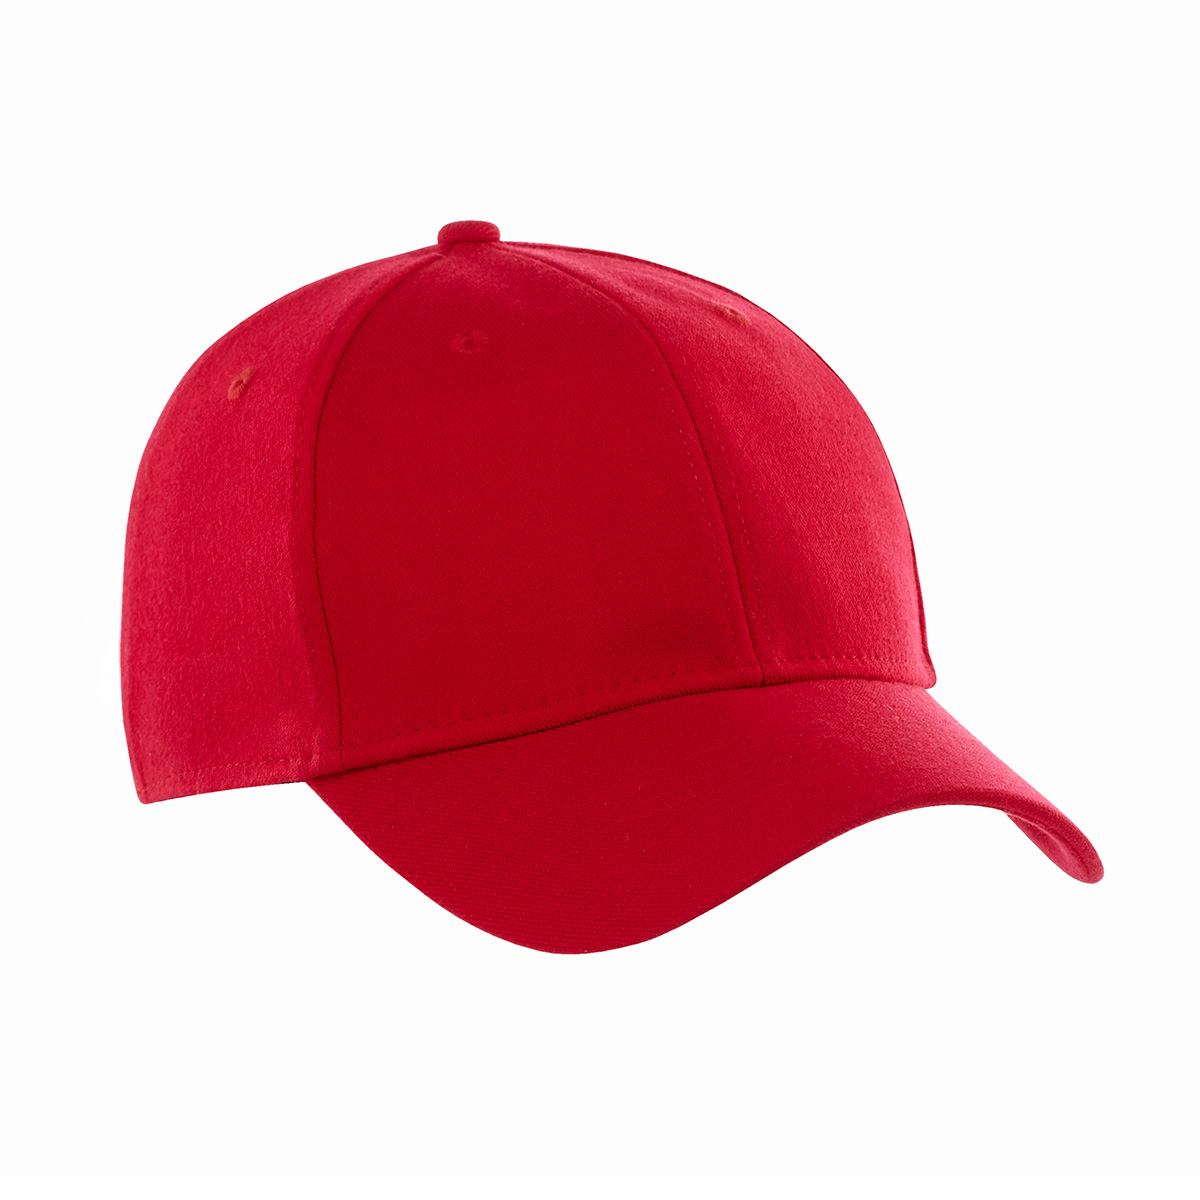 Acuity Fitted Ballcap, #32026 - Embroidered